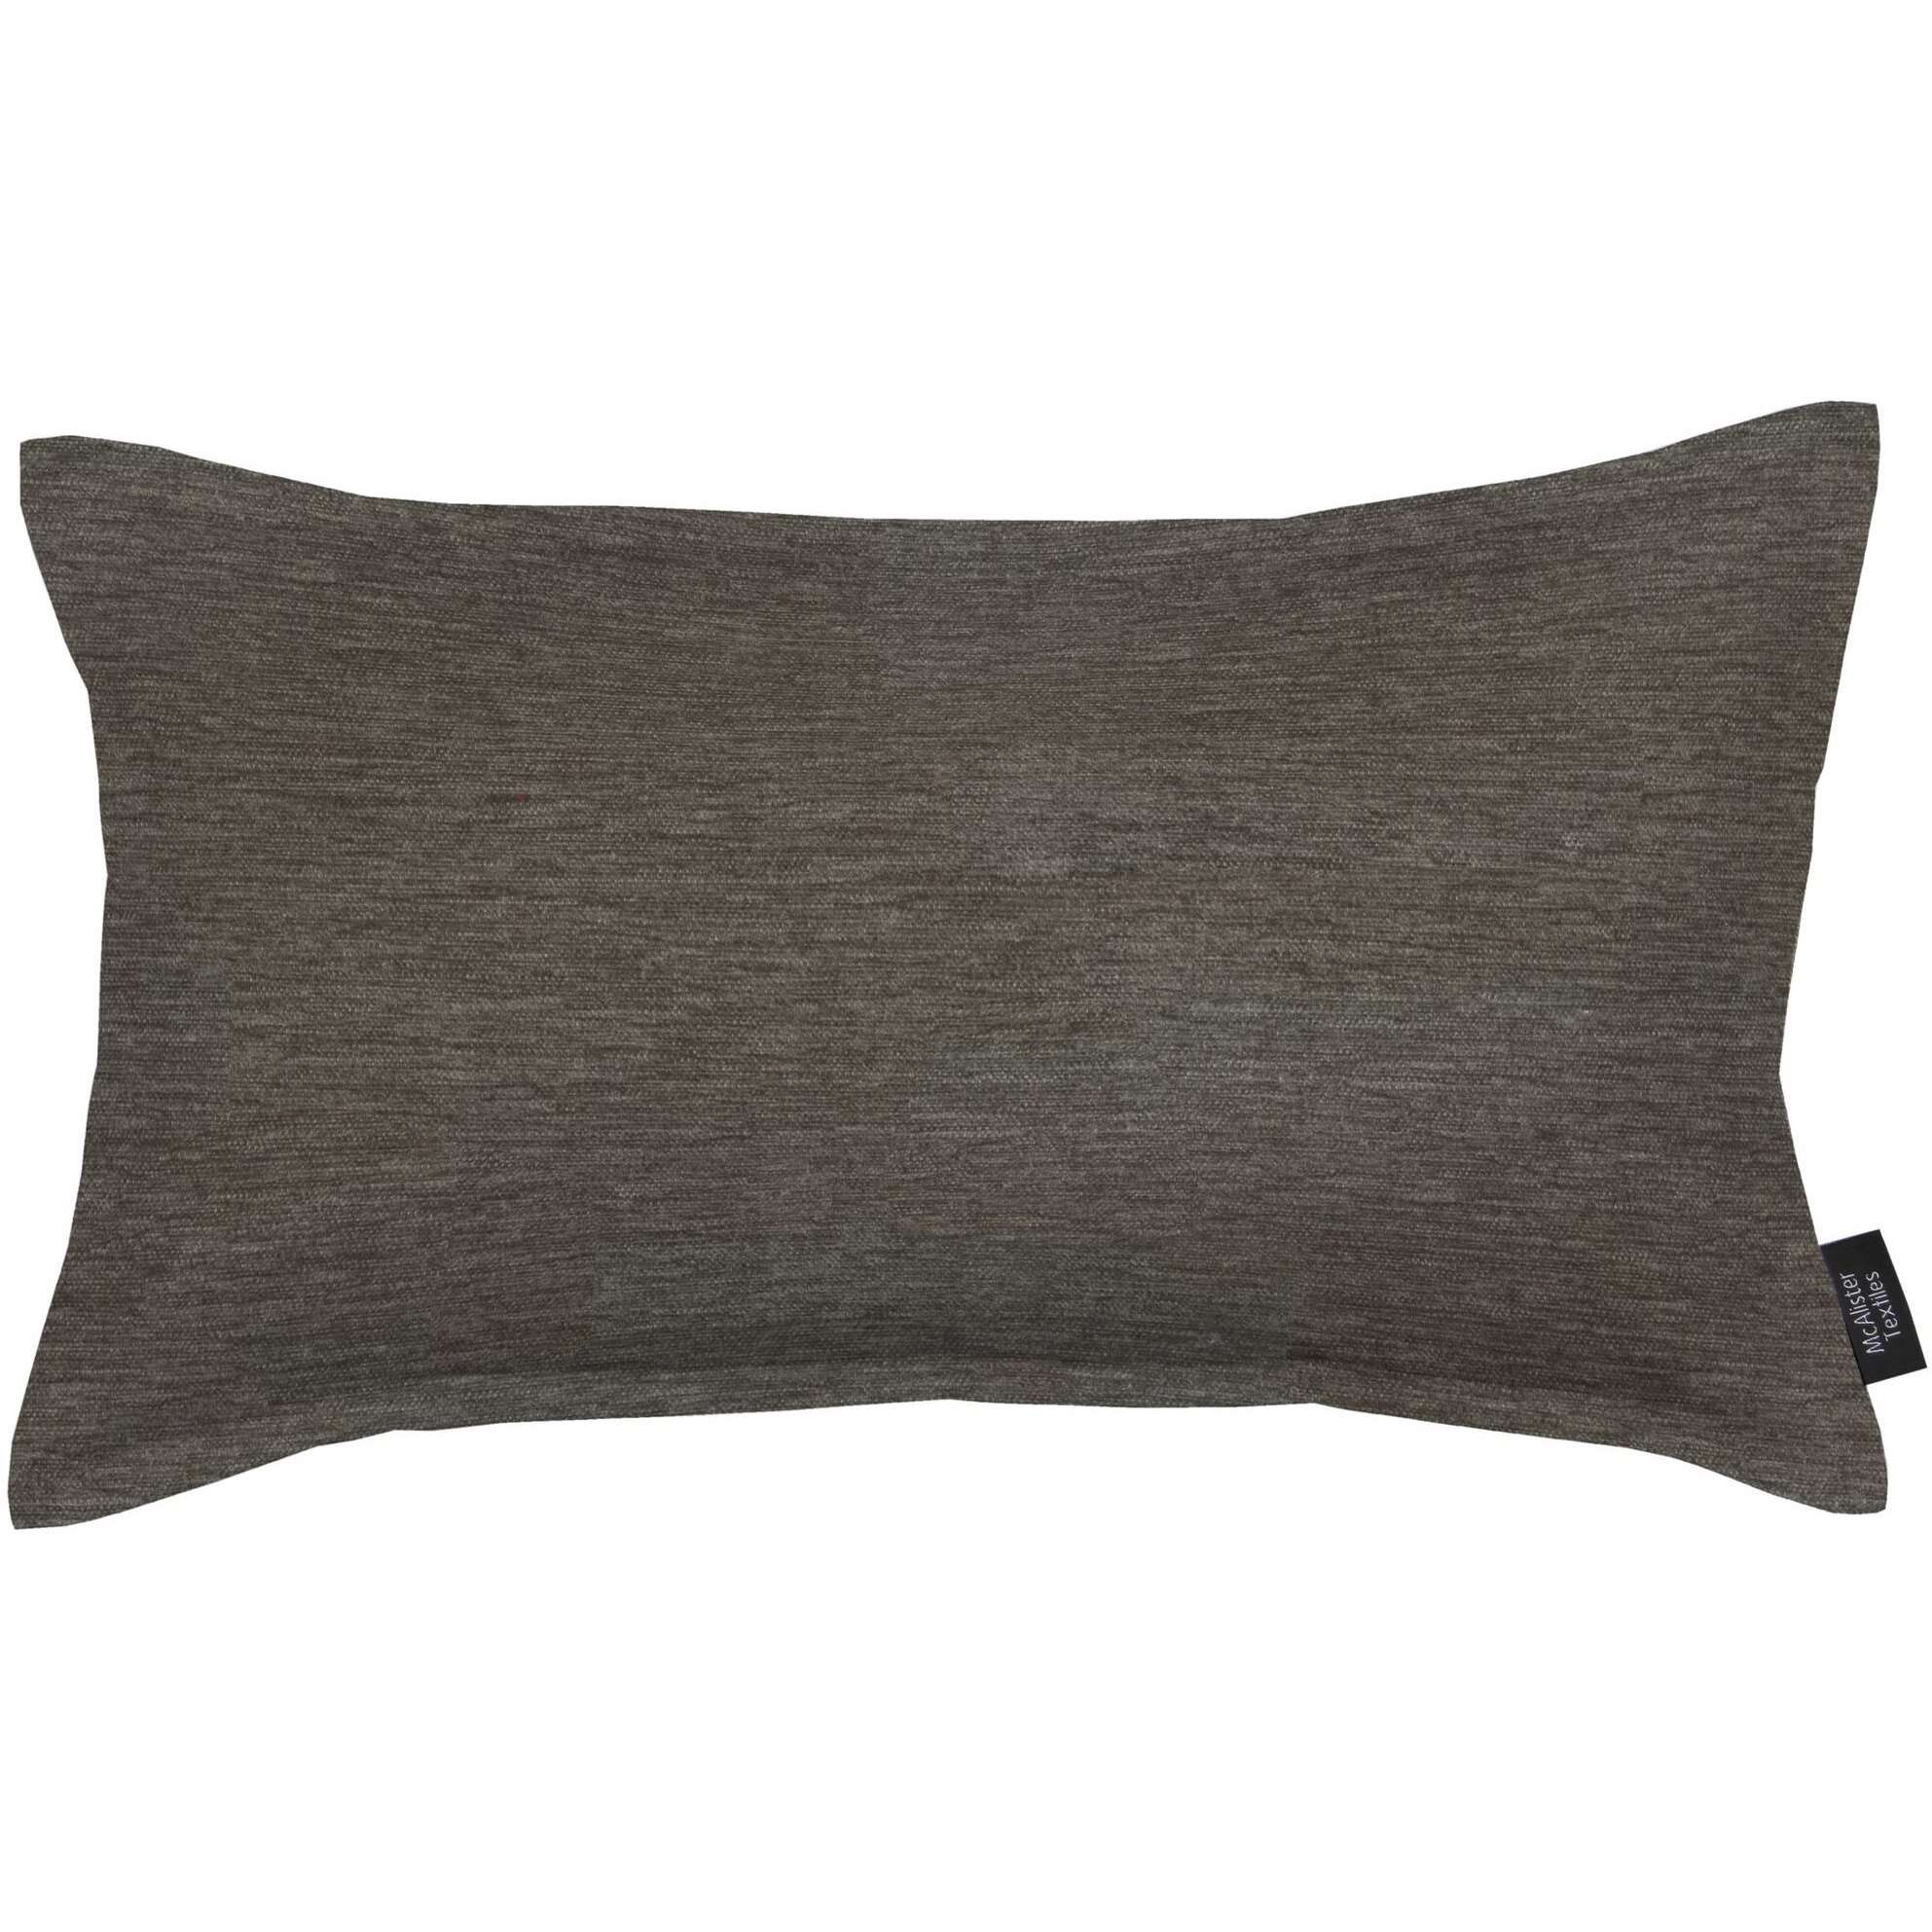 McAlister Textiles Plain Chenille Charcoal Grey Pillow Pillow Cover Only 50cm x 30cm